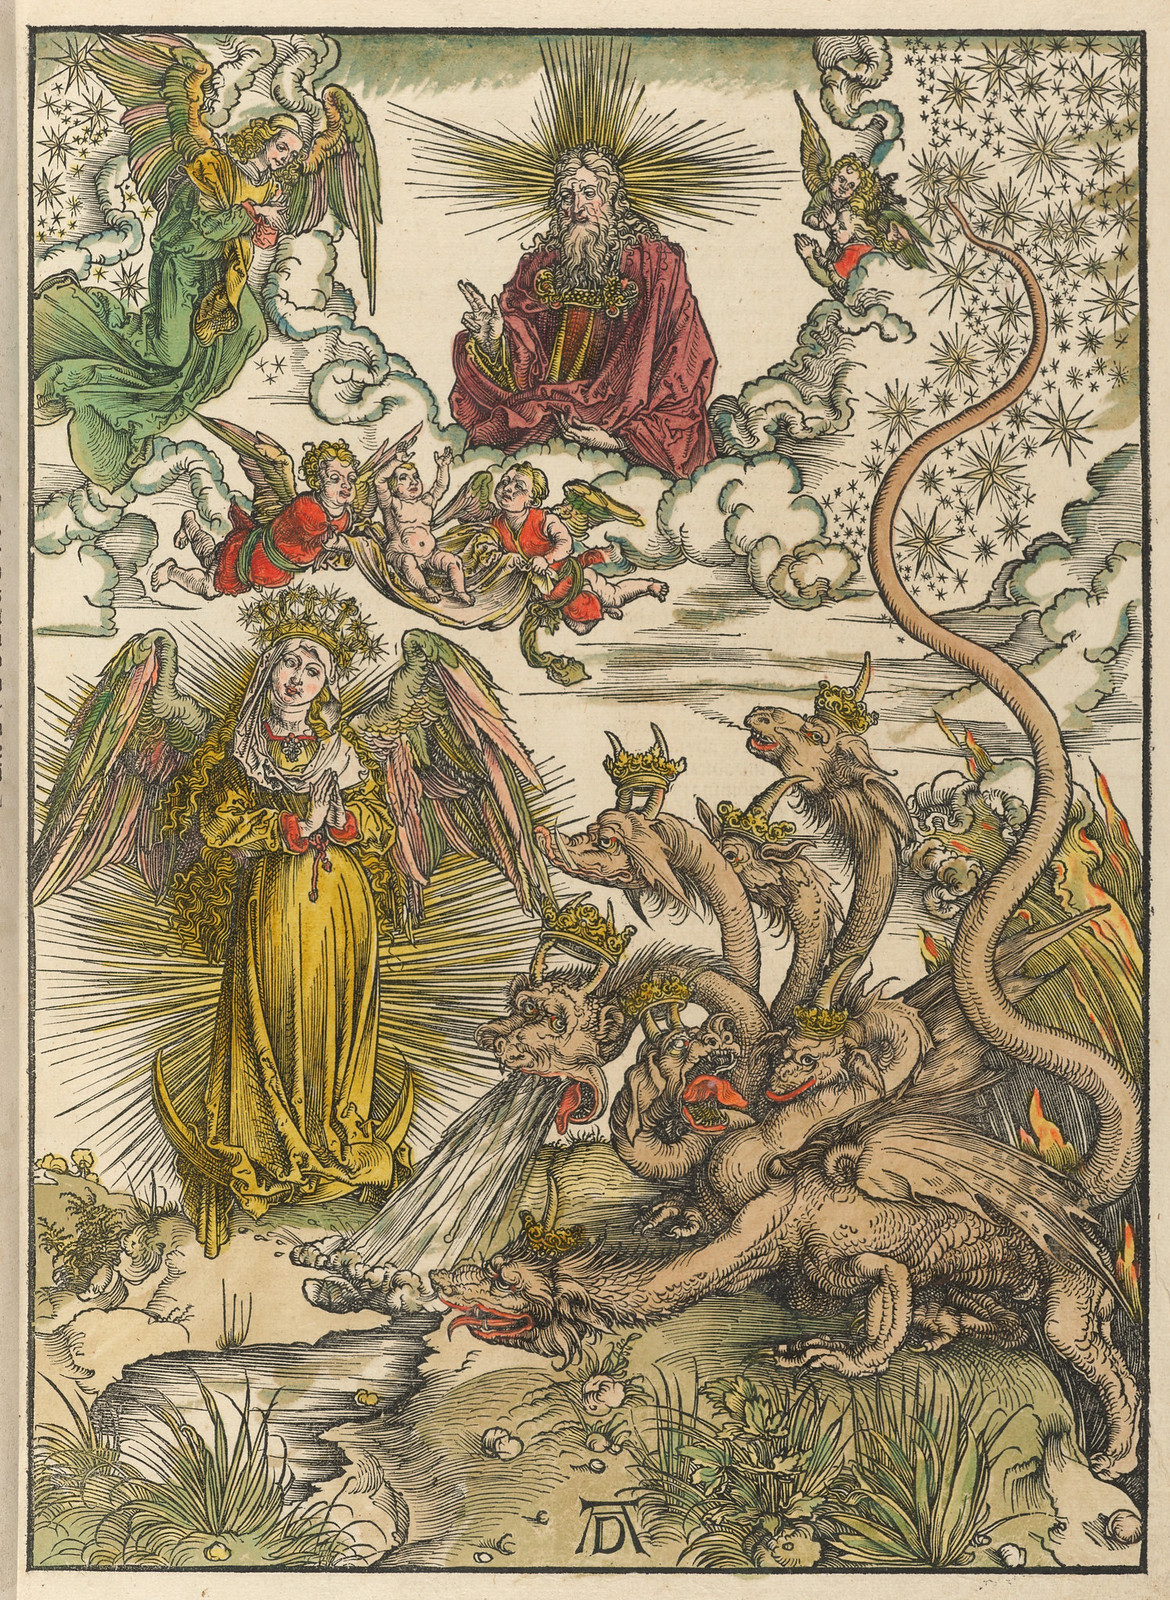 Albrecht Dürer - Woman of the Apocalypse, Plate ten of fifteen from the Latin edition of The Apocalypse series, hand colored, printed 1511